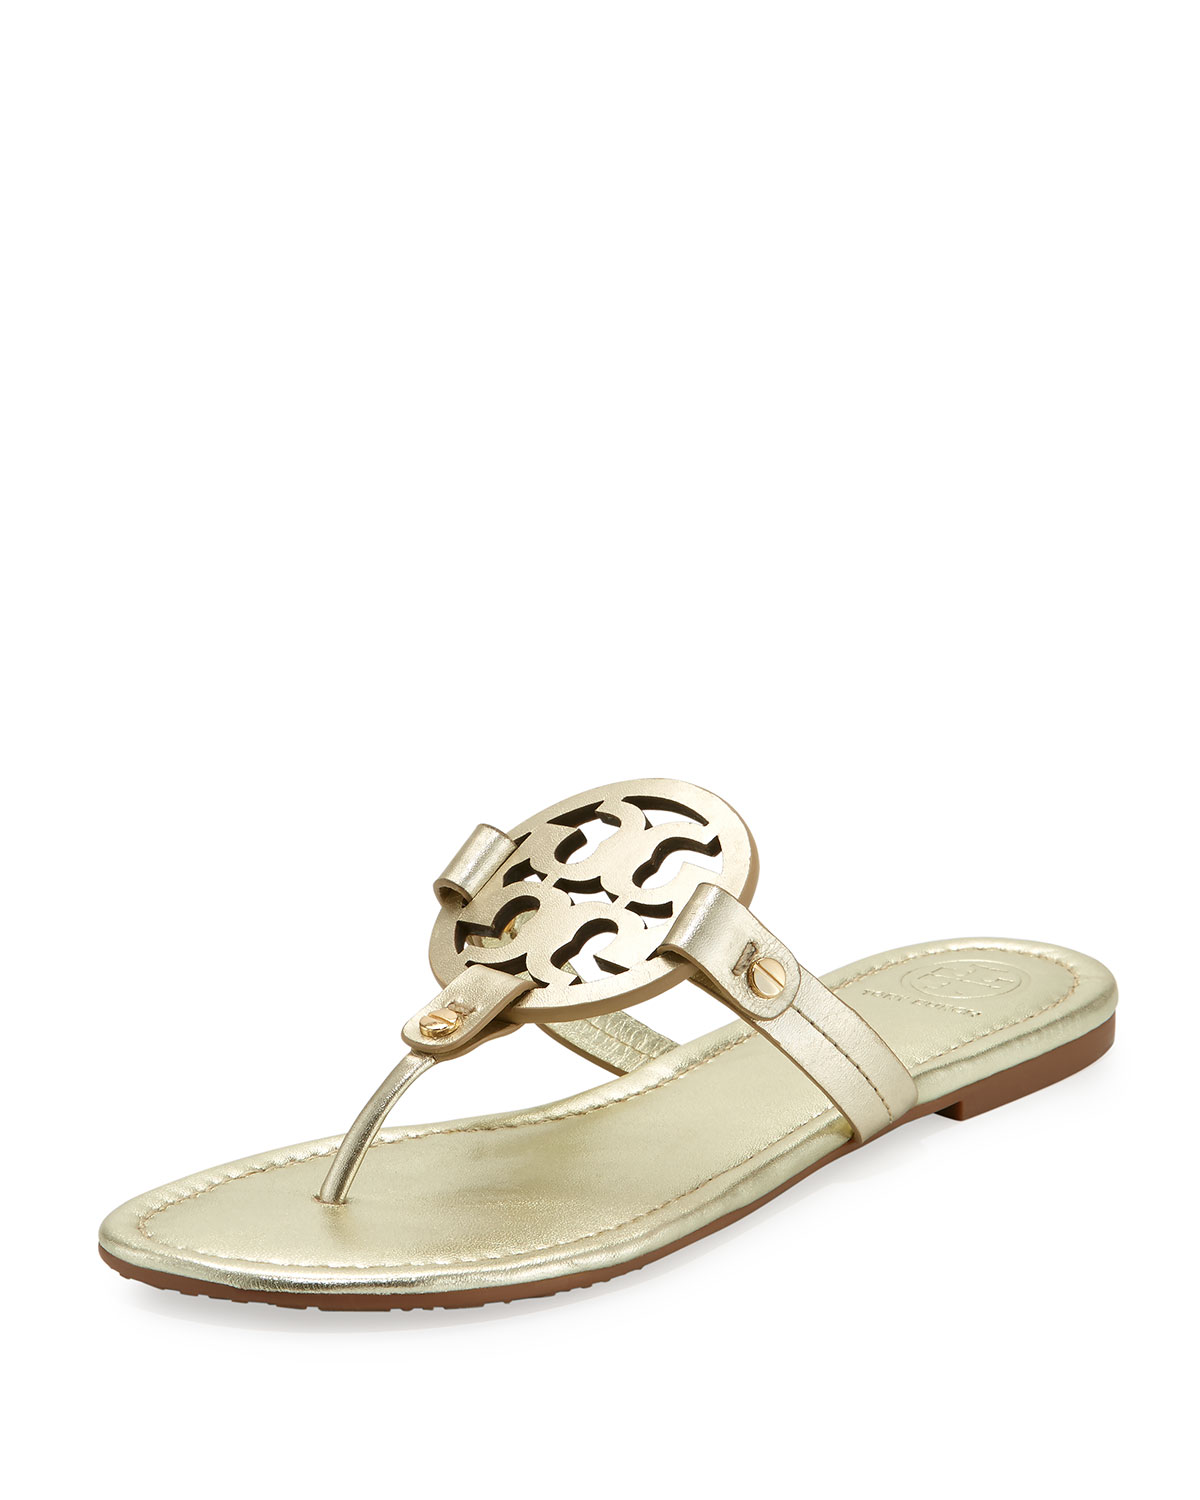 c44bf8b63 Tory Burch Miller Leather Logo Sandal